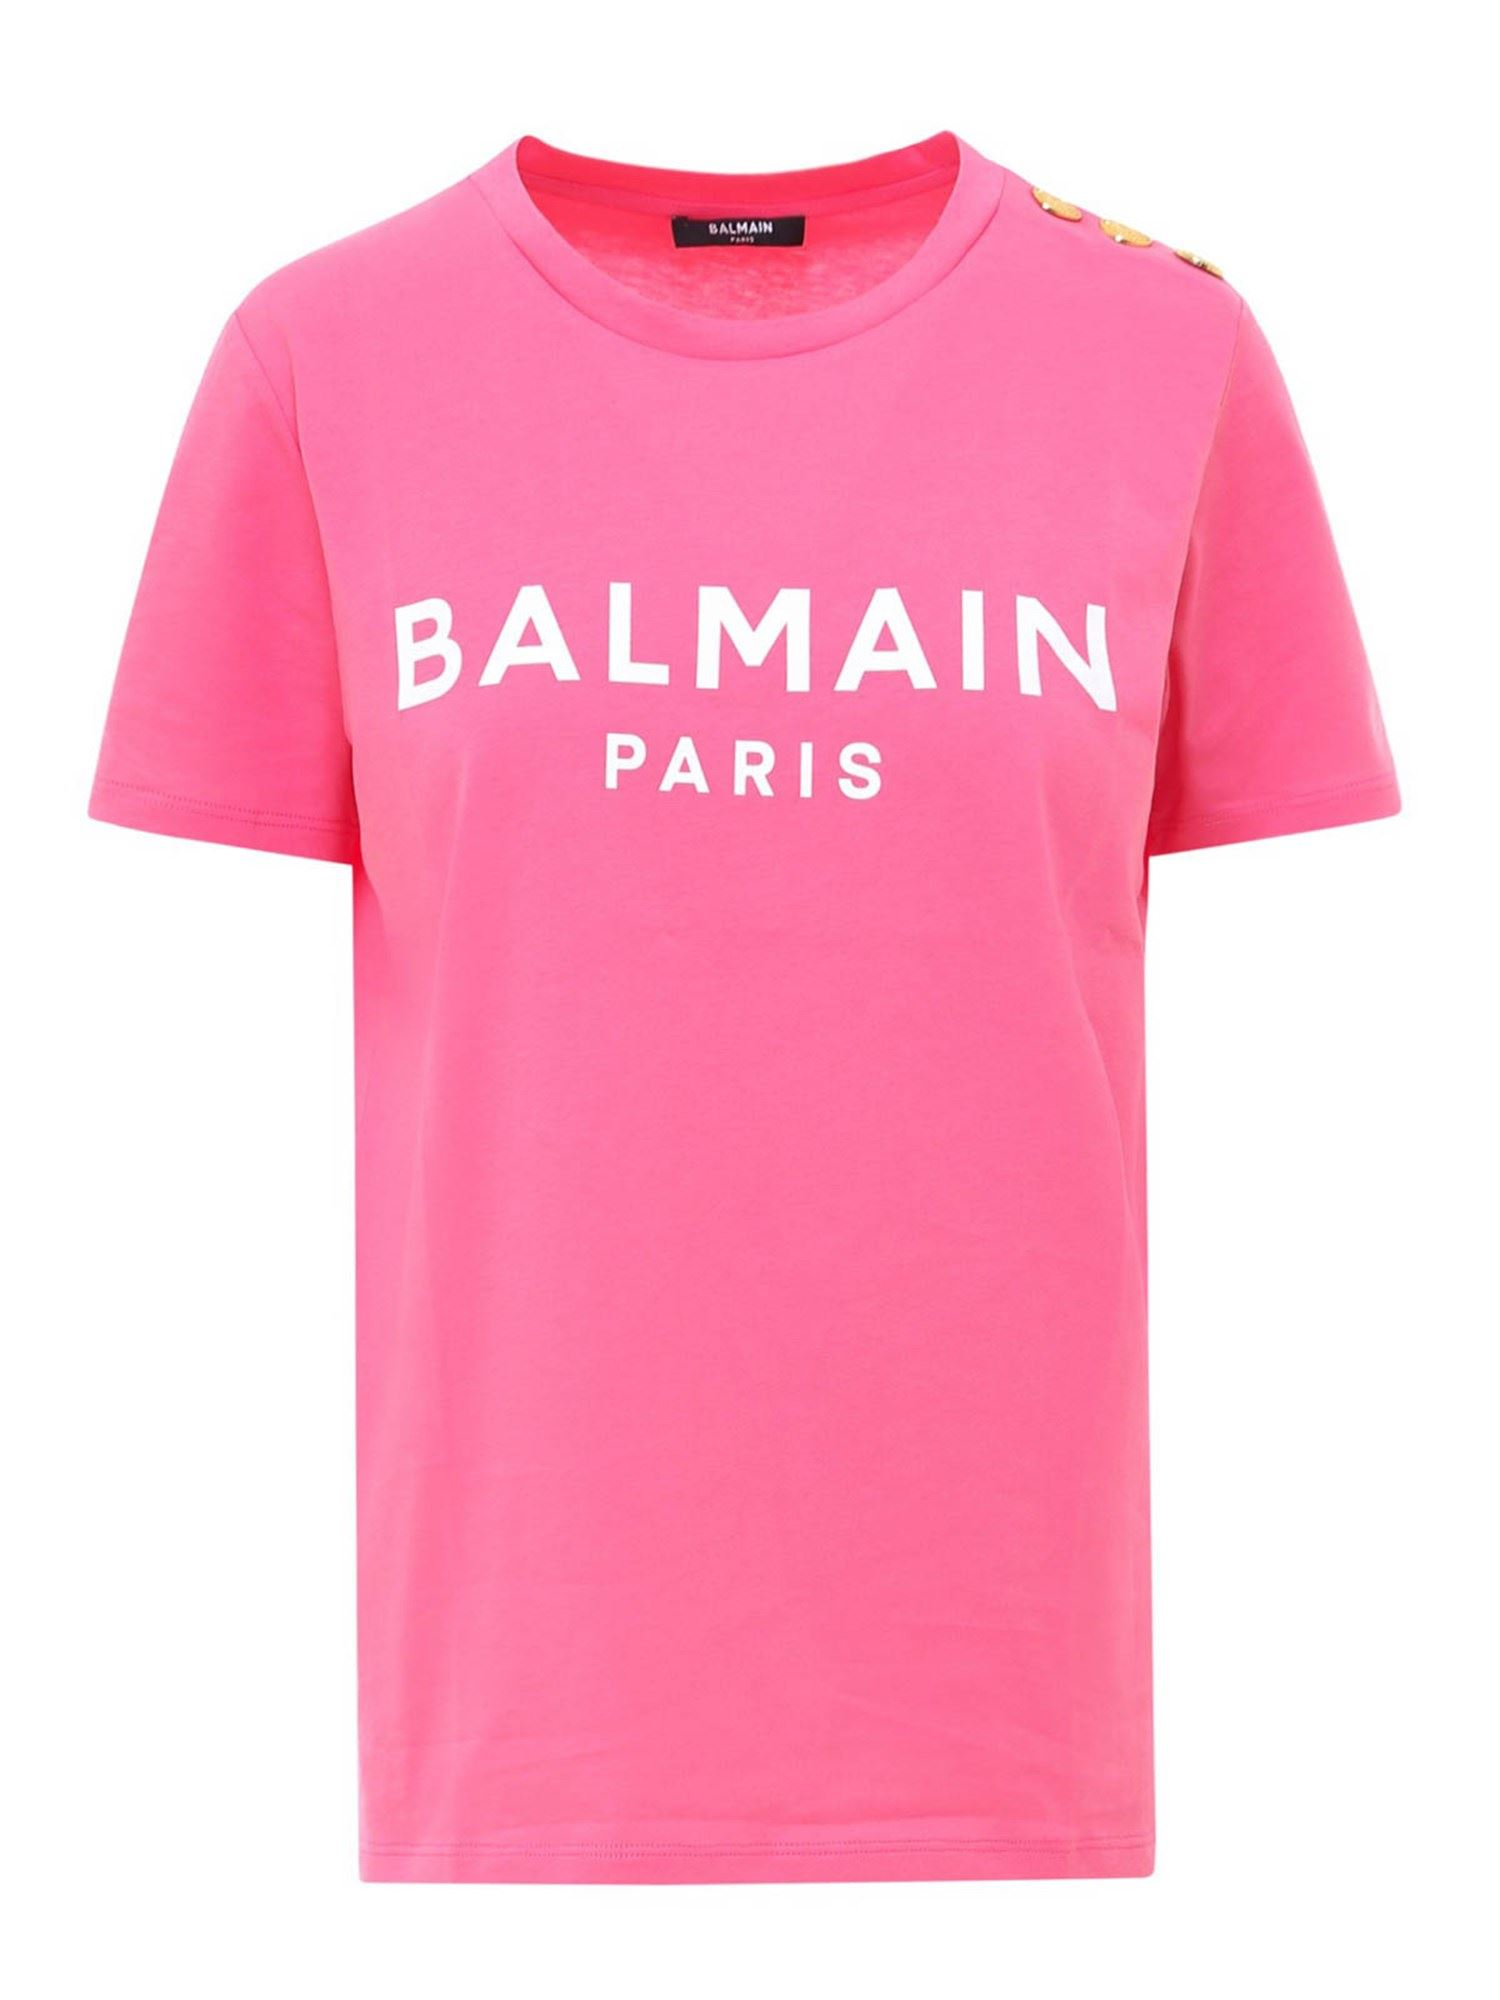 BALMAIN BRANDED COTTON T-SHIRT IN PINK